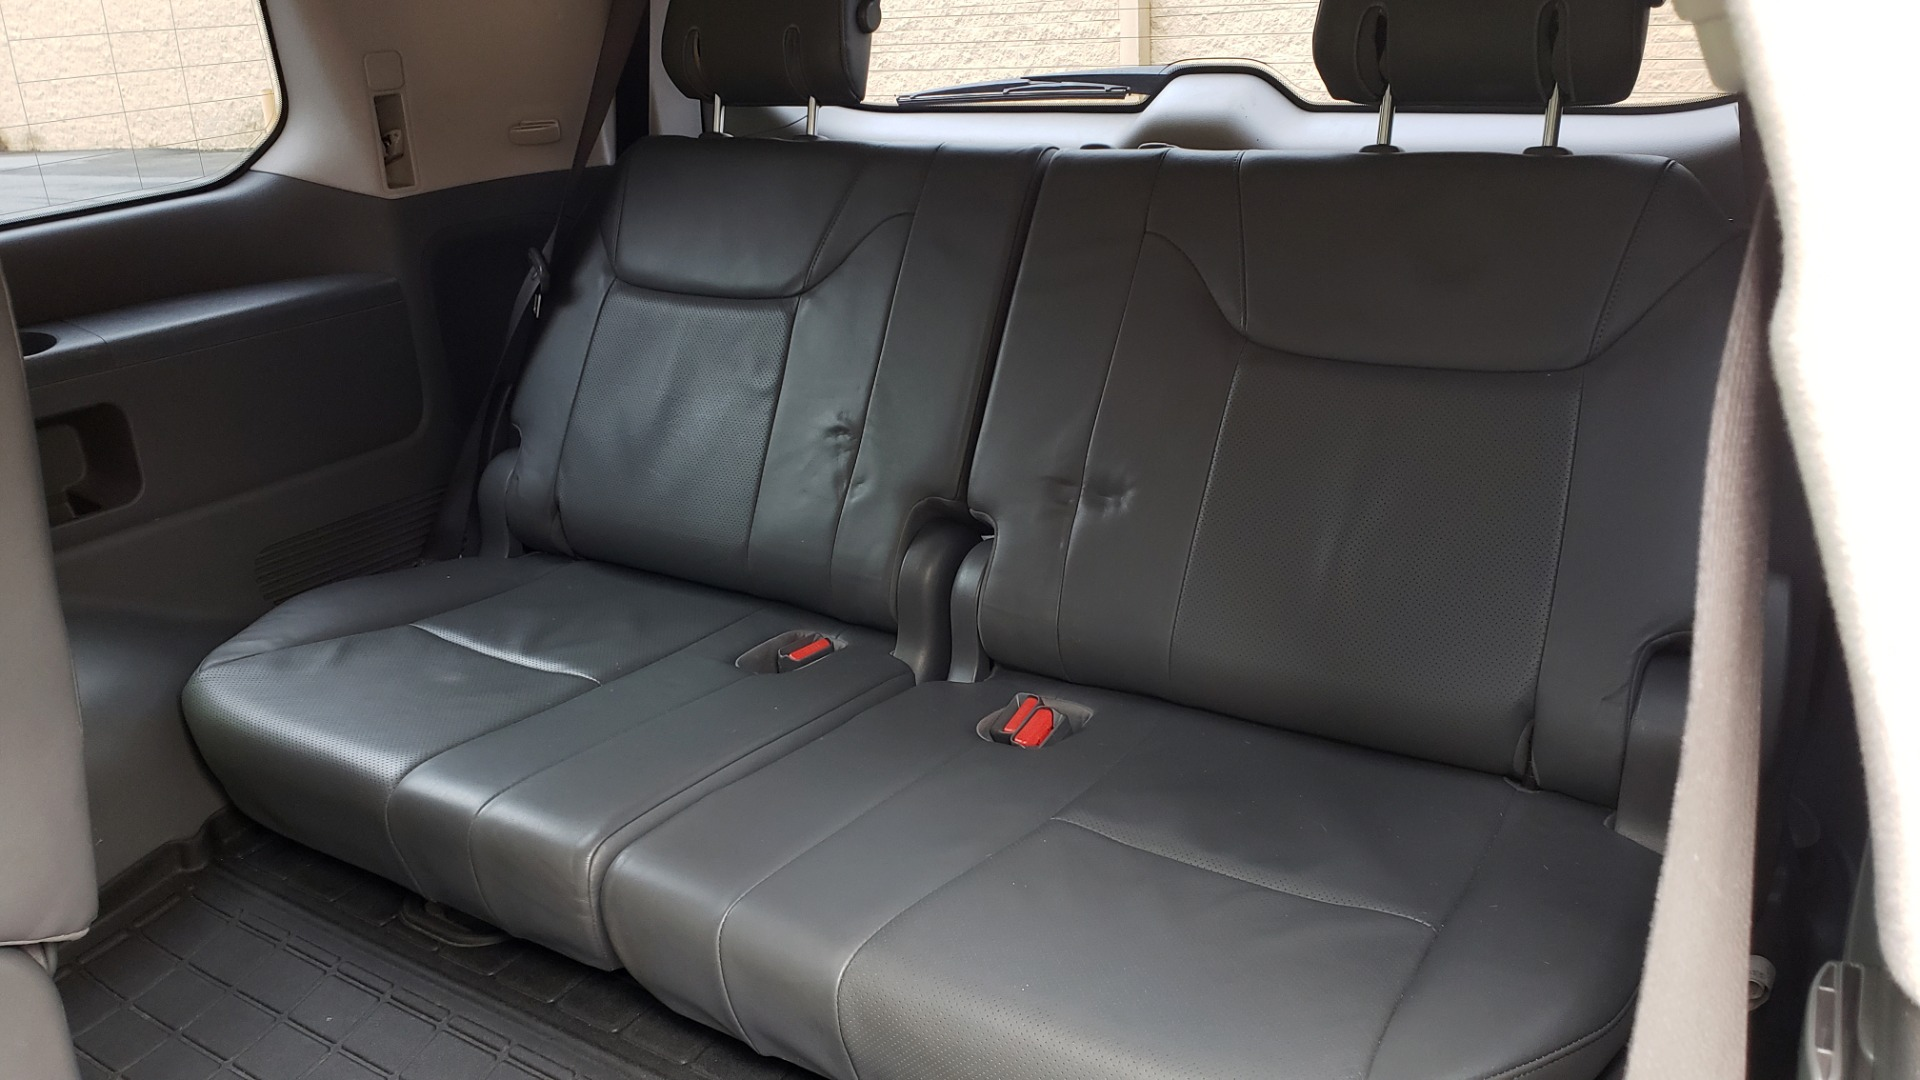 Used 2008 Lexus LX 570 4WD / TECH PKG / NAV / SUNROOF / MARK LEVINSON / PARK ASST for sale $22,995 at Formula Imports in Charlotte NC 28227 64